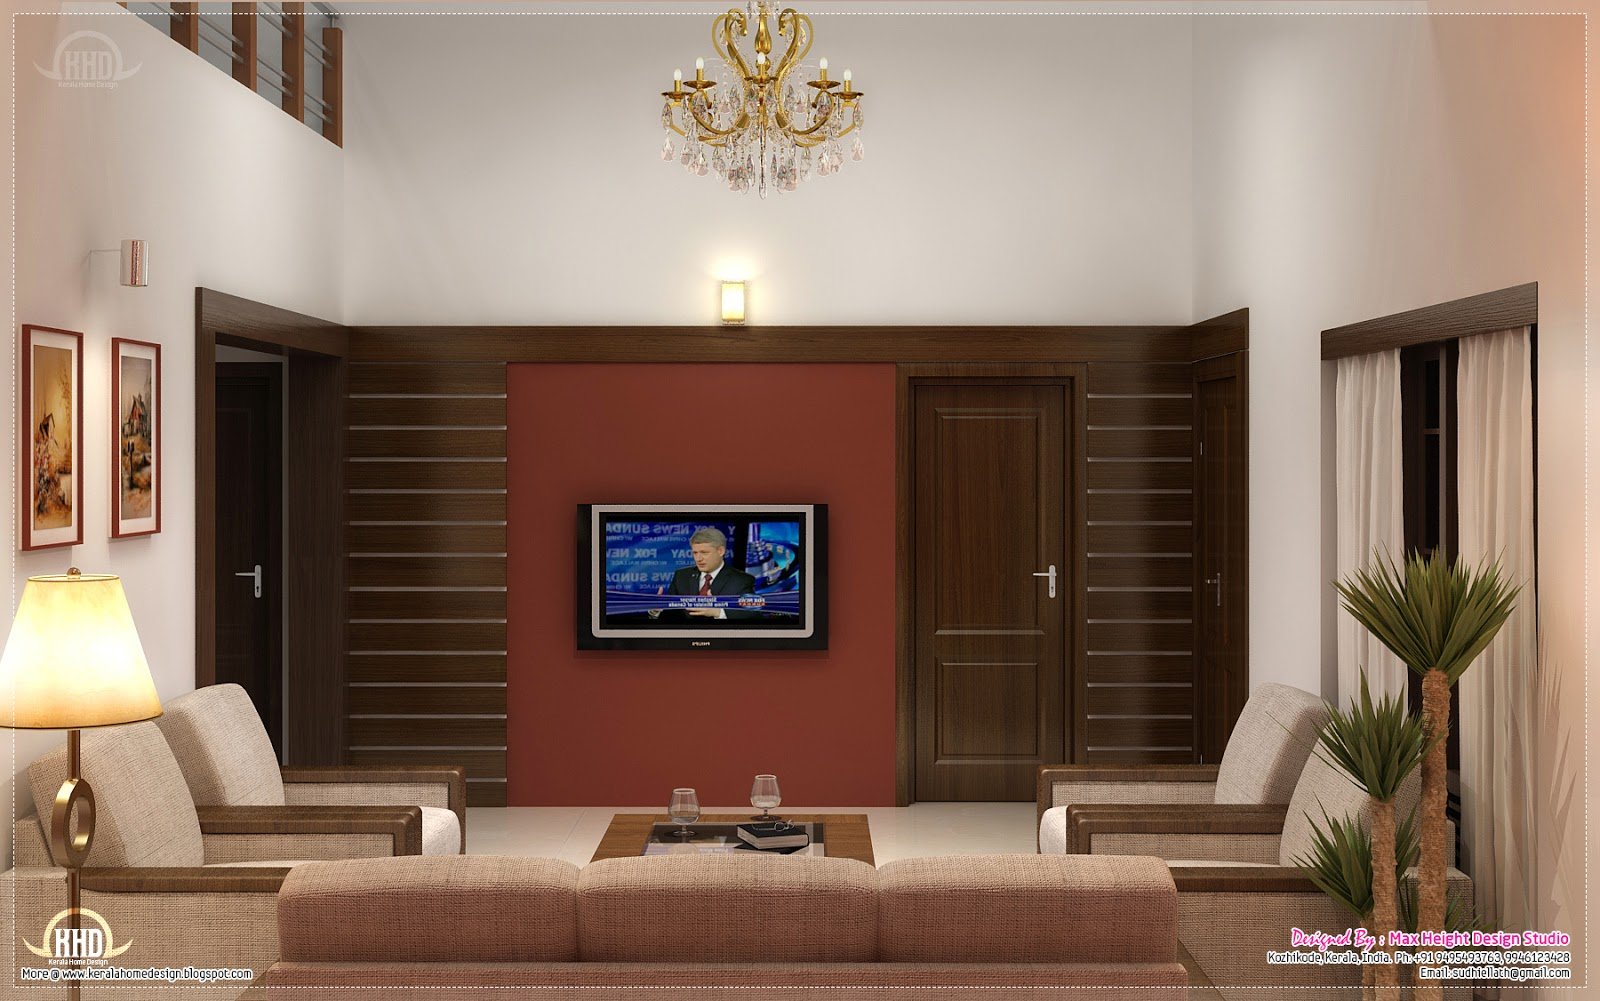 Home interior design ideas kerala home design and floor for Home interior living room